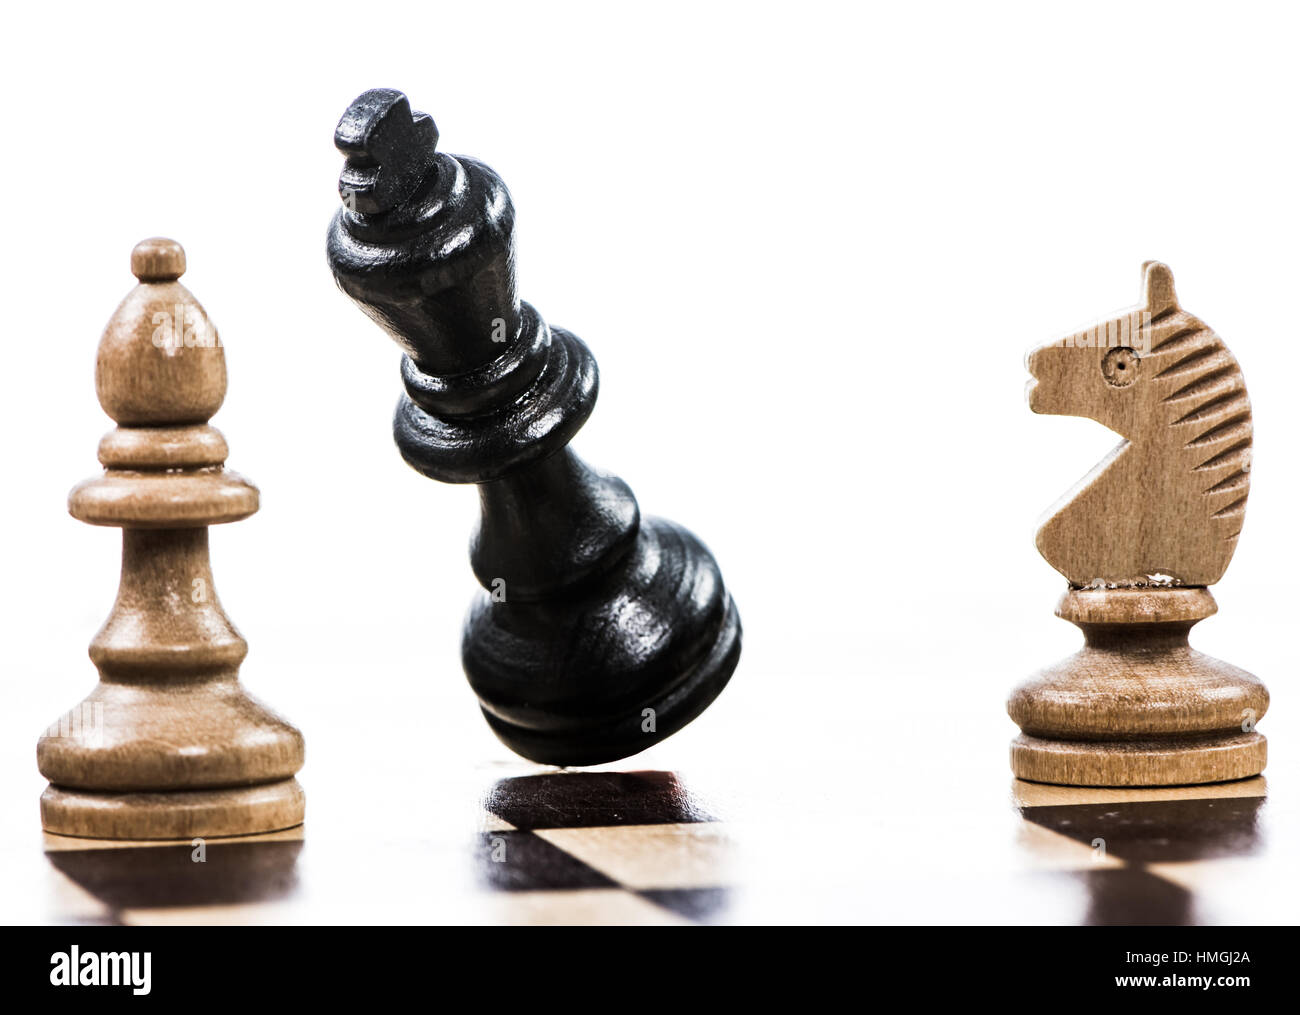 Checkmate - Game of chess with a falling king - Stock Image